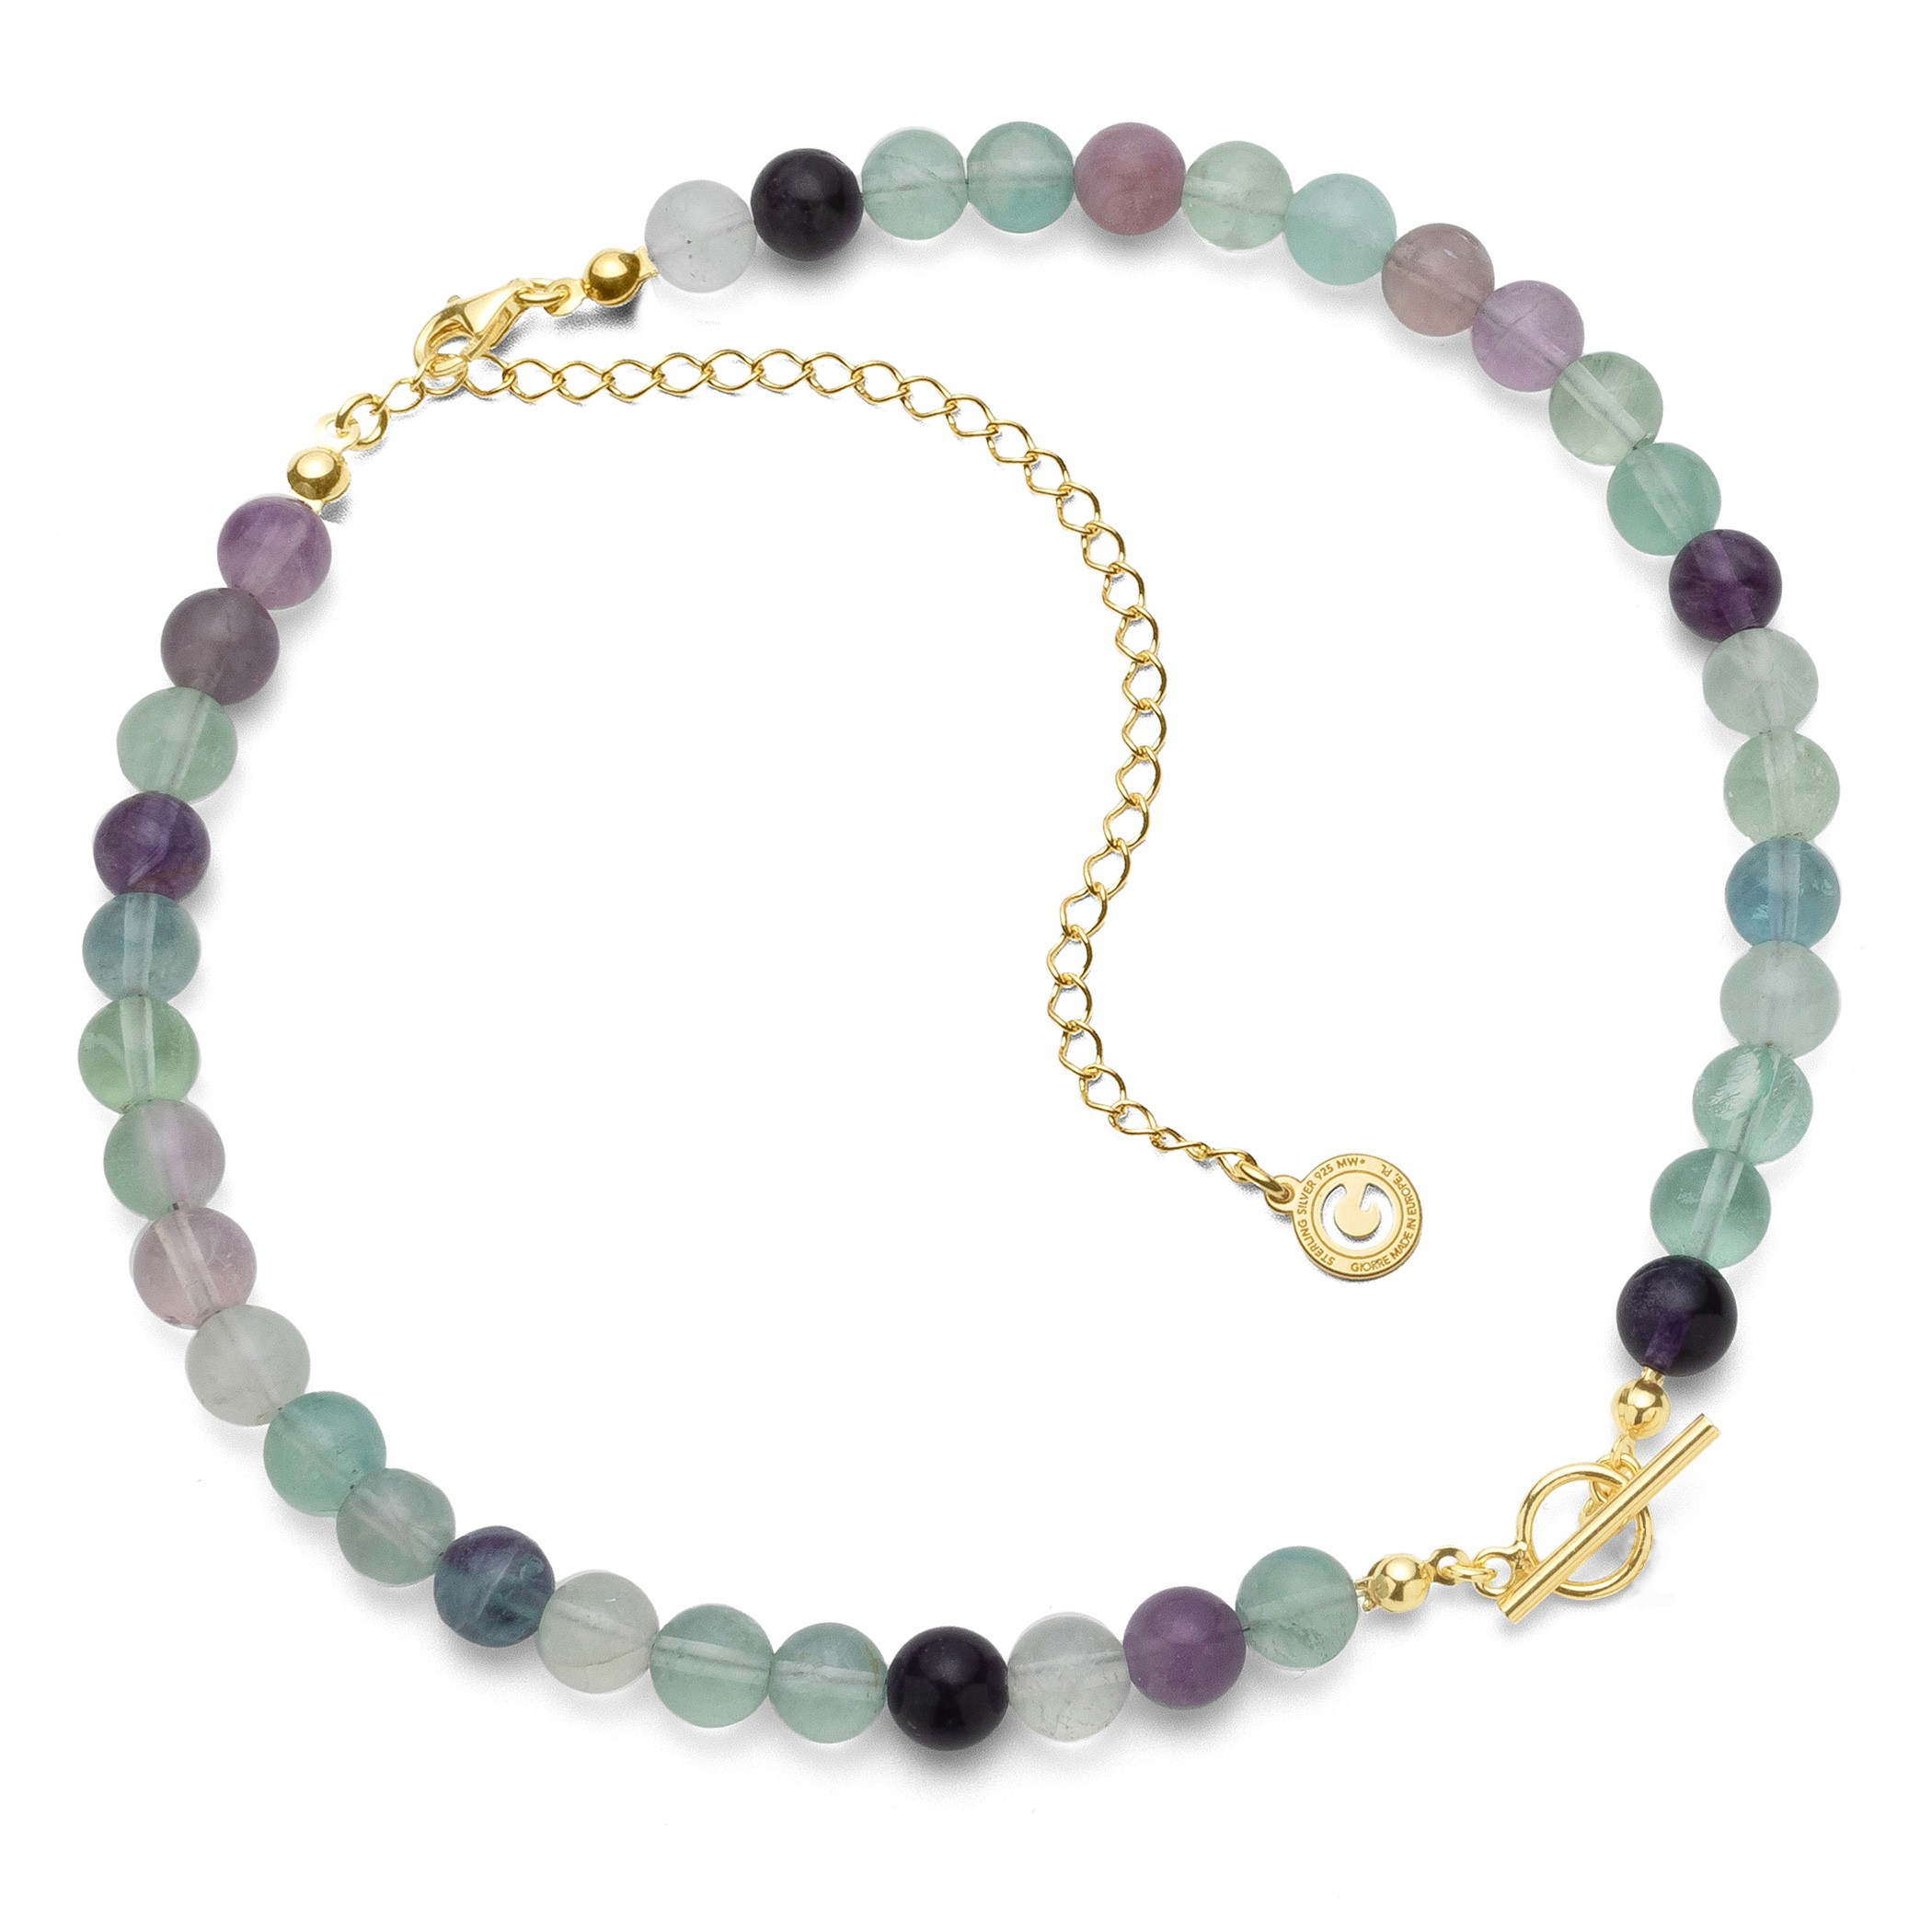 Choker with fluorite, charms base, Silver 925